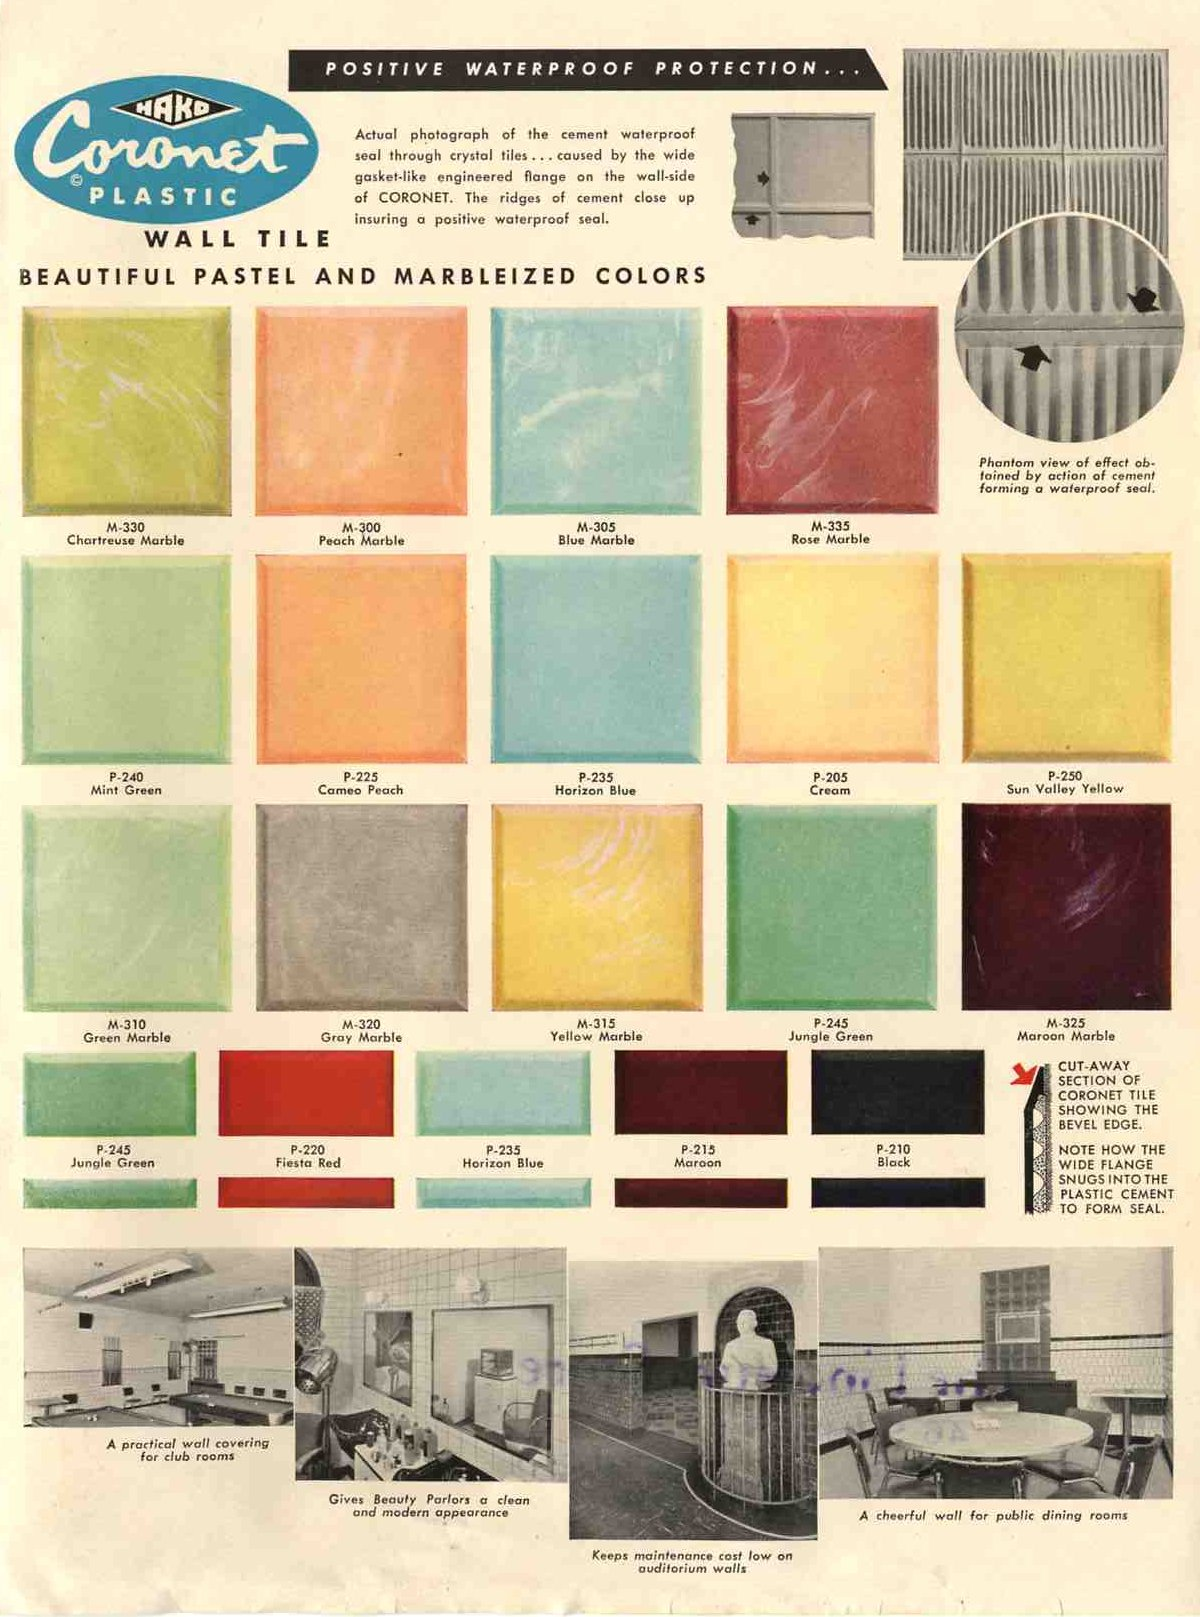 Plastic bathroom tile: 20 pages of images from 3 catalogs - Retro ...